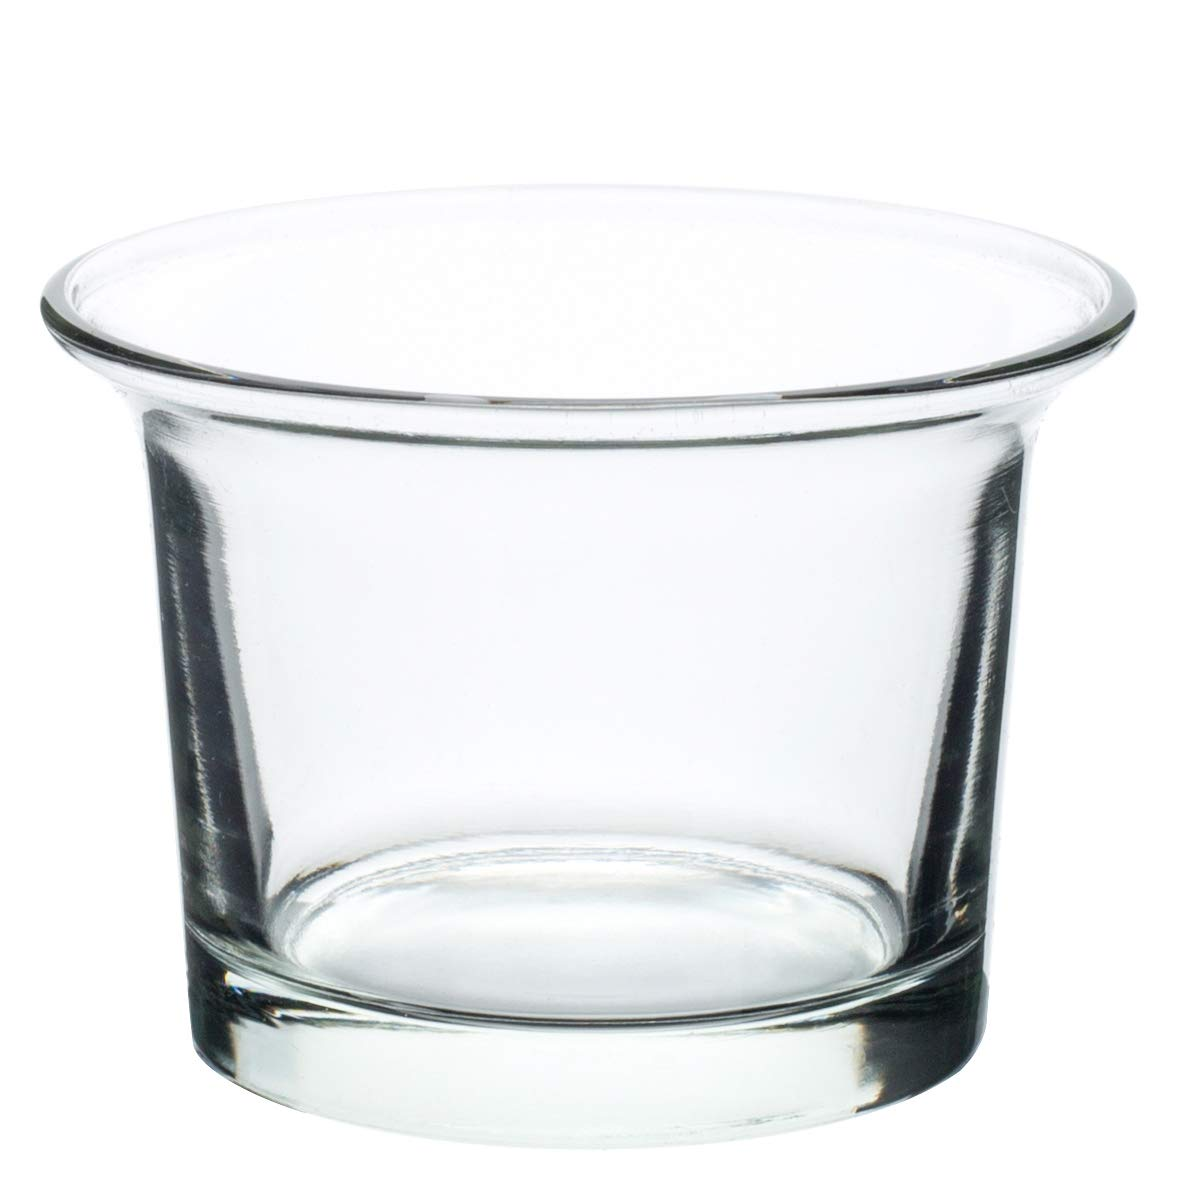 Royal Imports Candle Holder Glass Votive Wedding, Birthday, Holiday & Home Decoration, Oyster, Set of 36 - Unfilled